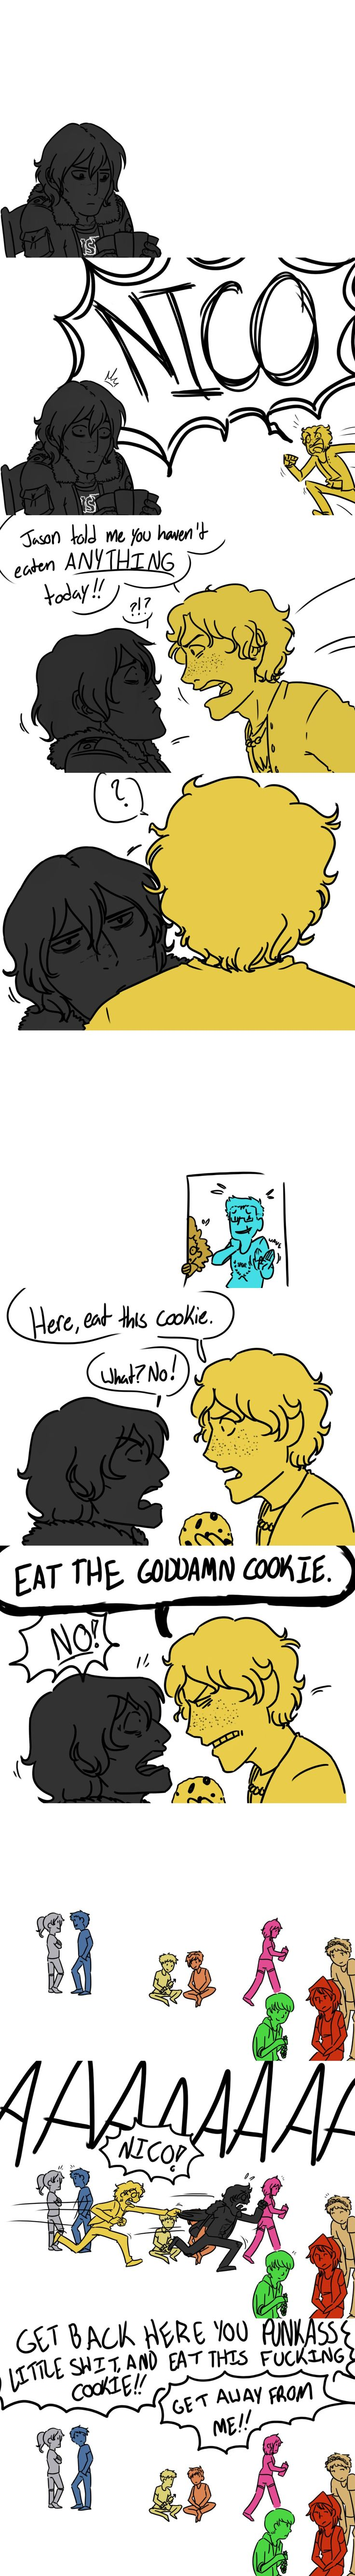 If you don't eat something I'm going to sHOVE AN ENTIRE BRISKET DOWN YOUR THROAT will solace nico di angelo fanart